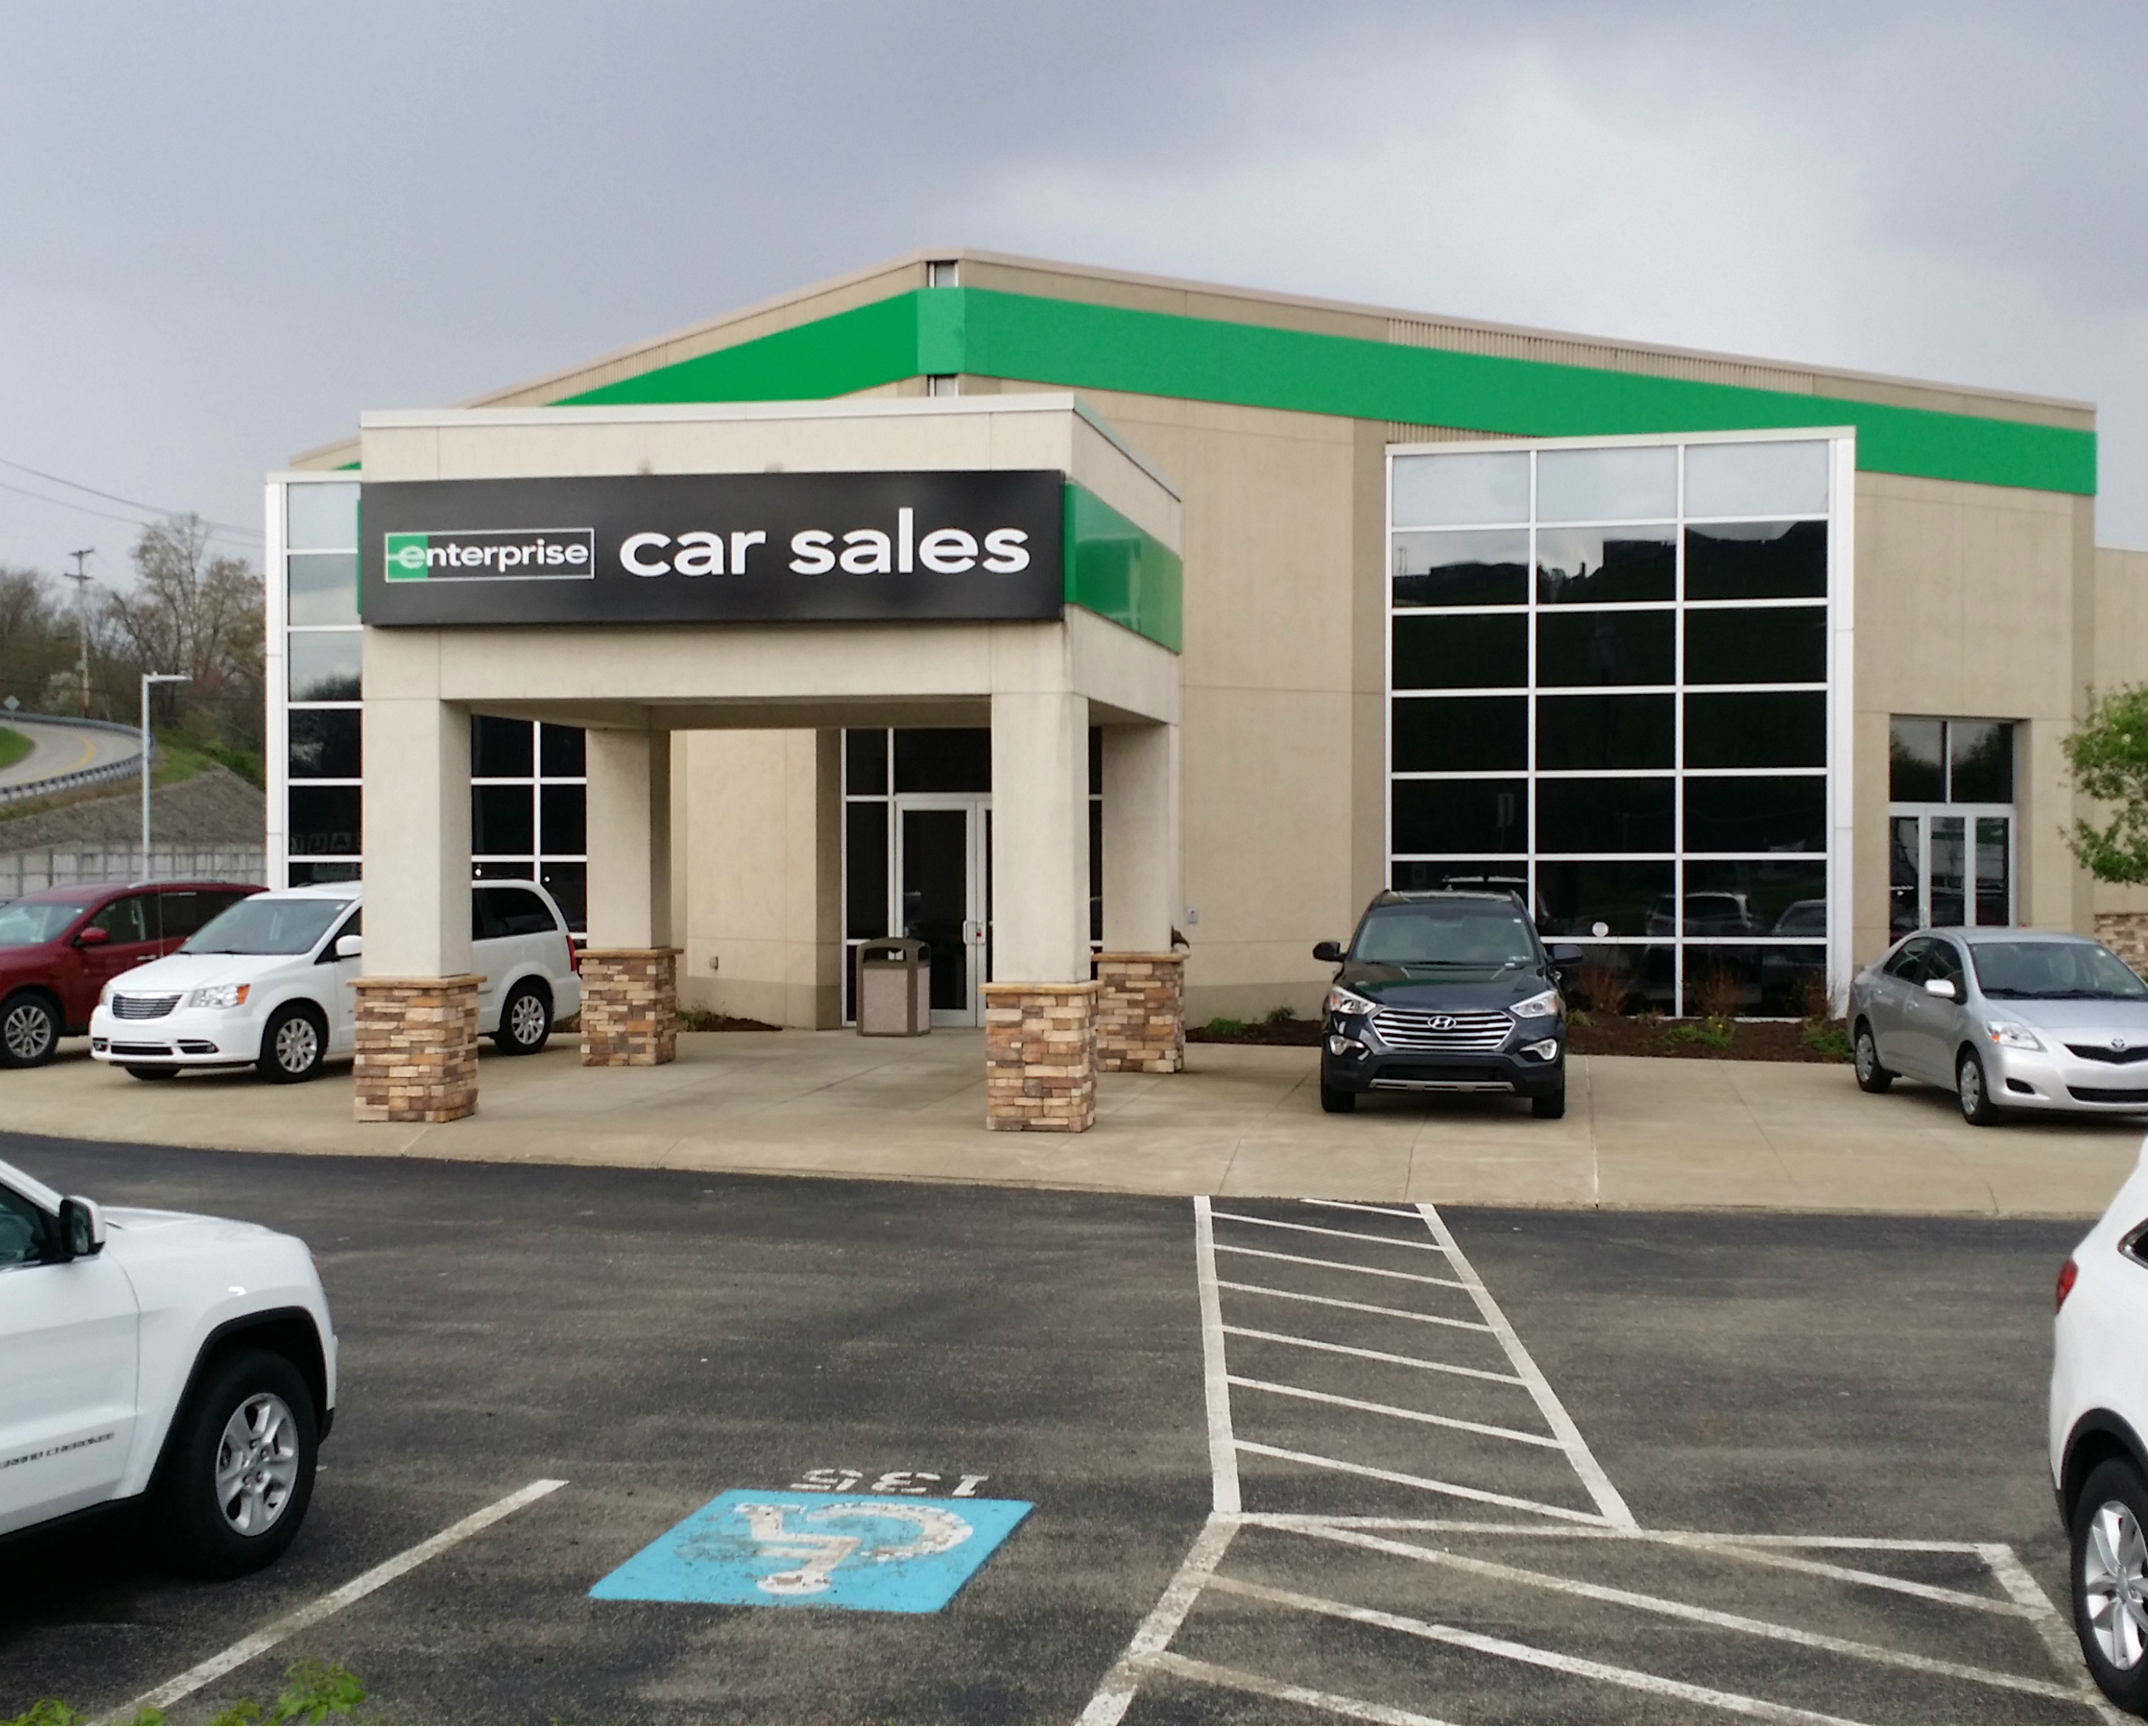 enterprise car sales monroeville